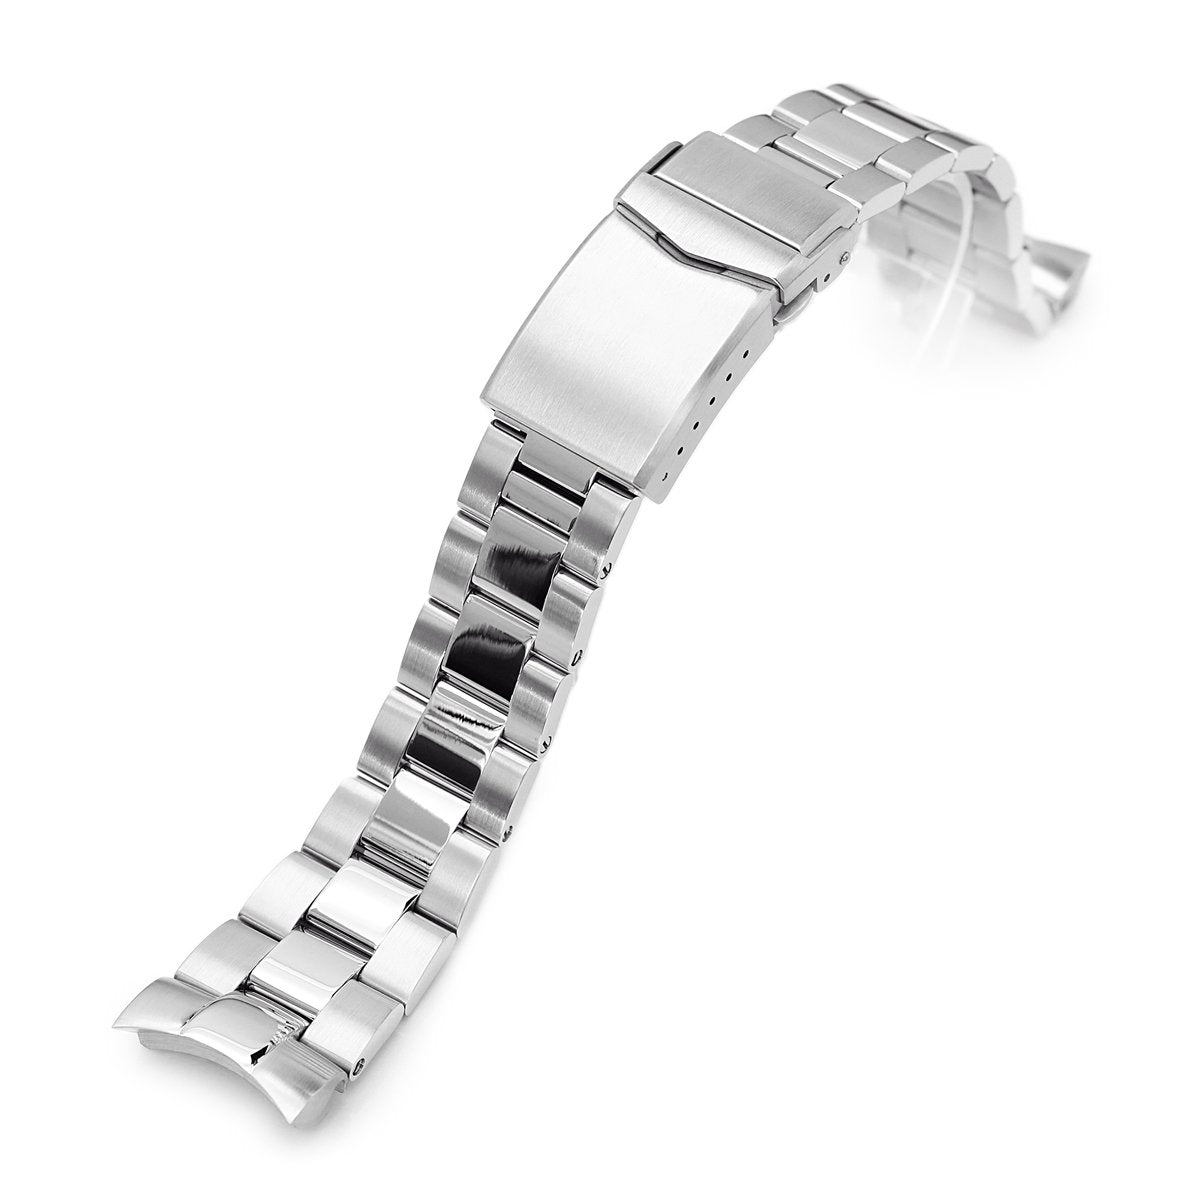 22mm Super-O Boyer 316L Stainless Steel Watch Bracelet for Orient Mako II Brushed and Polished V-Clasp Strapcode Watch Bands